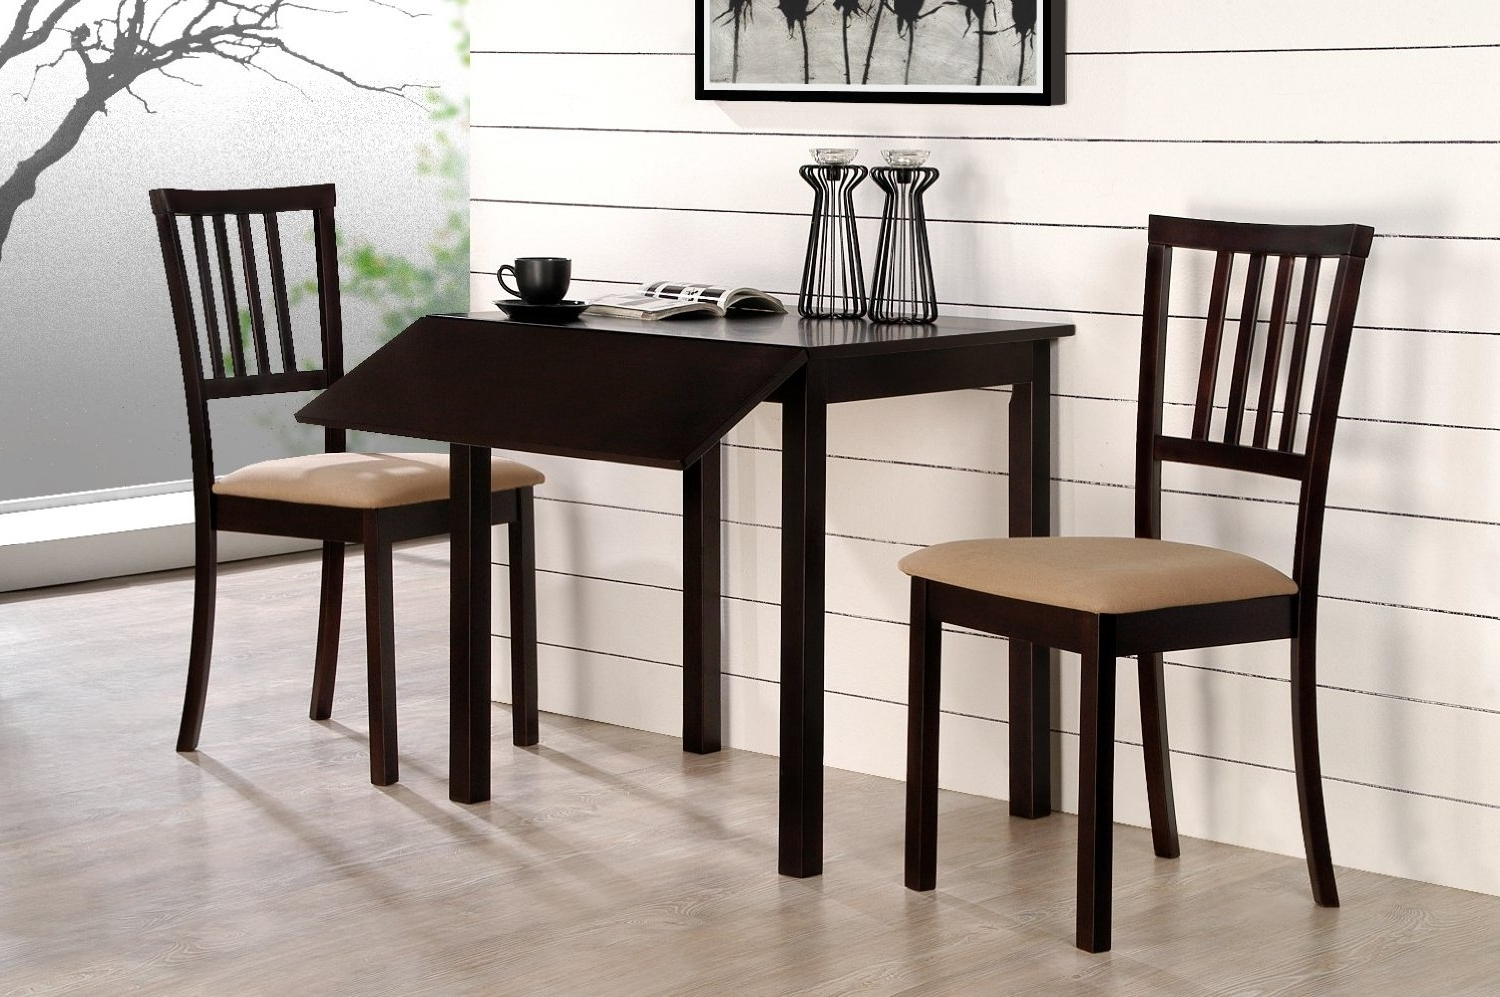 Latest Compact Dining Space Arrangement With Drop Leaf Dining Table For In Dining Tables For Two (View 17 of 25)